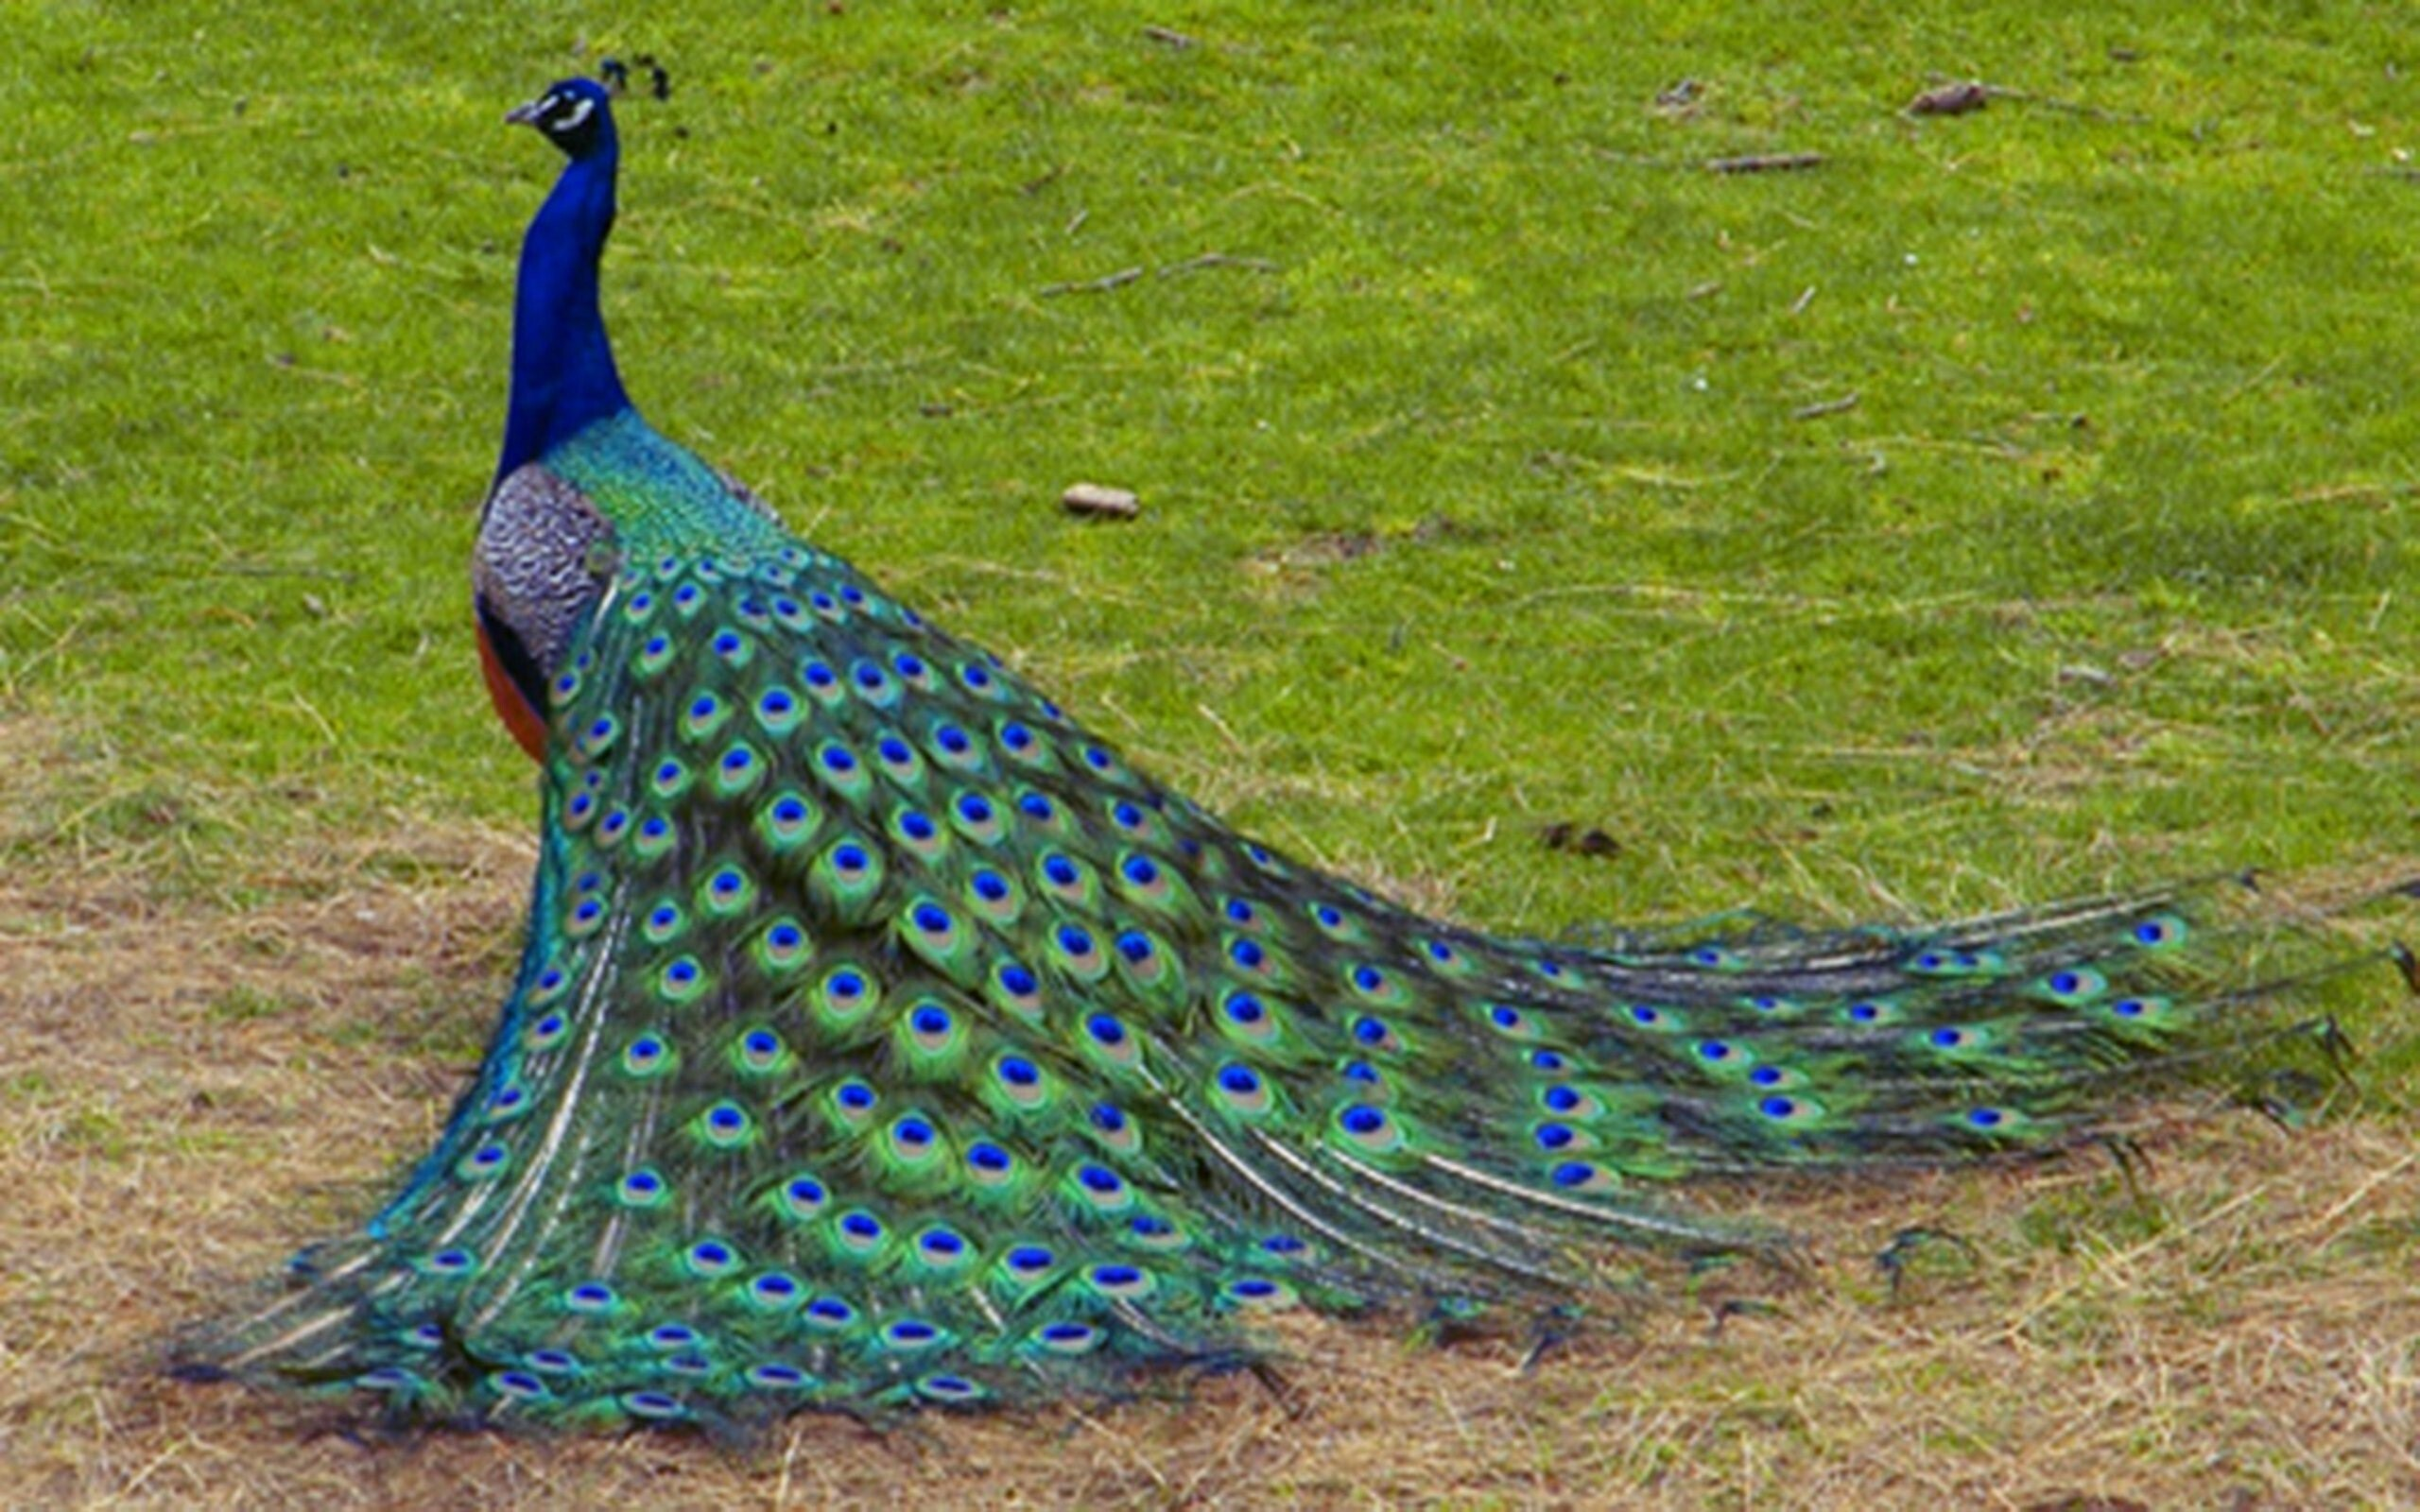 peacock wallpapers free download colorful birds hd desktop images